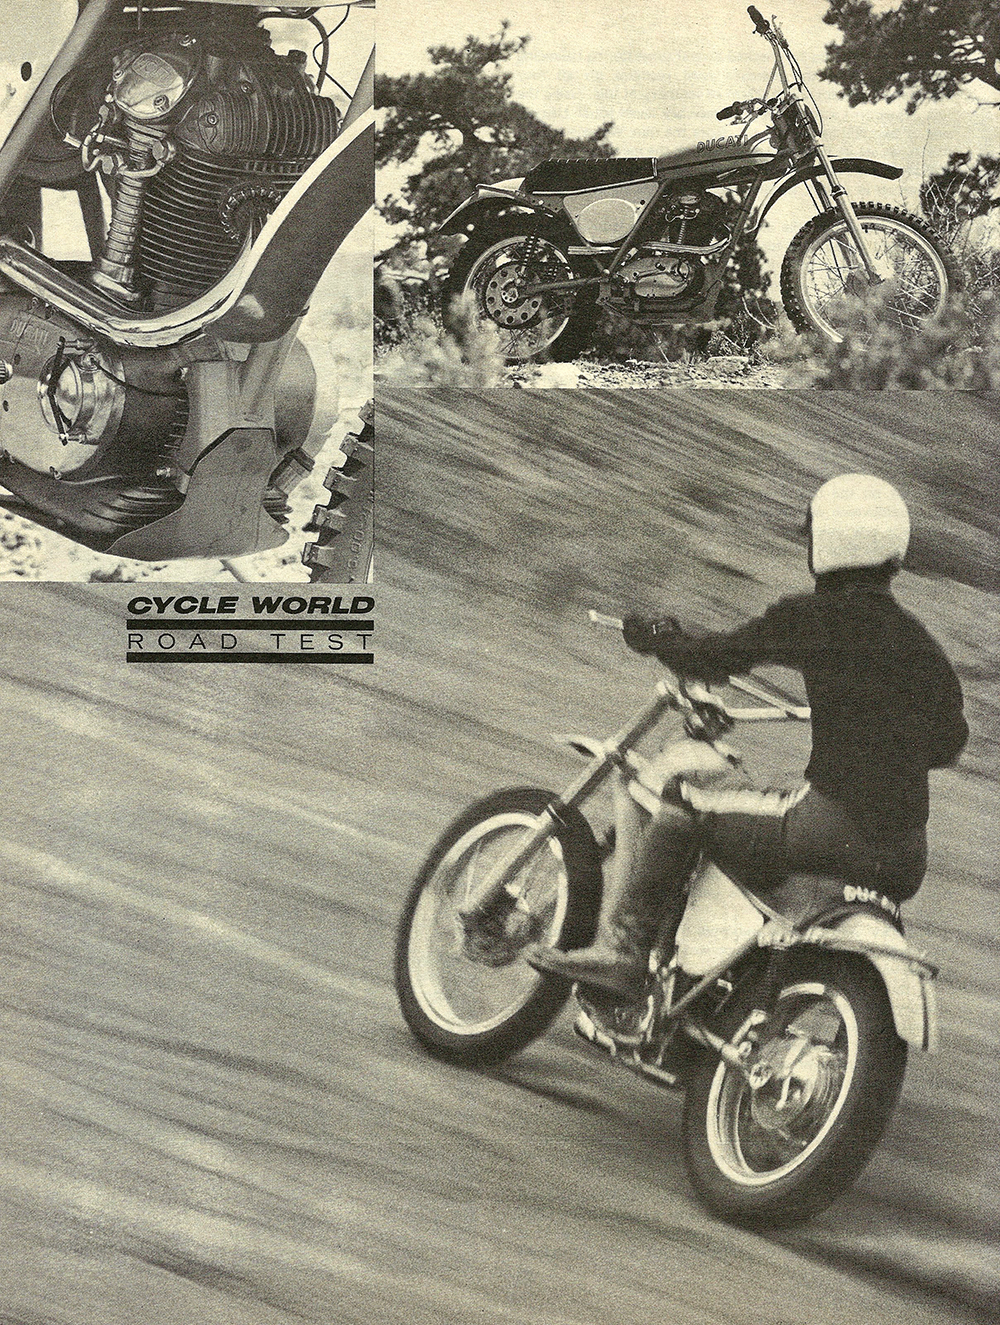 1971 Ducati 450 RT road test 01.jpg